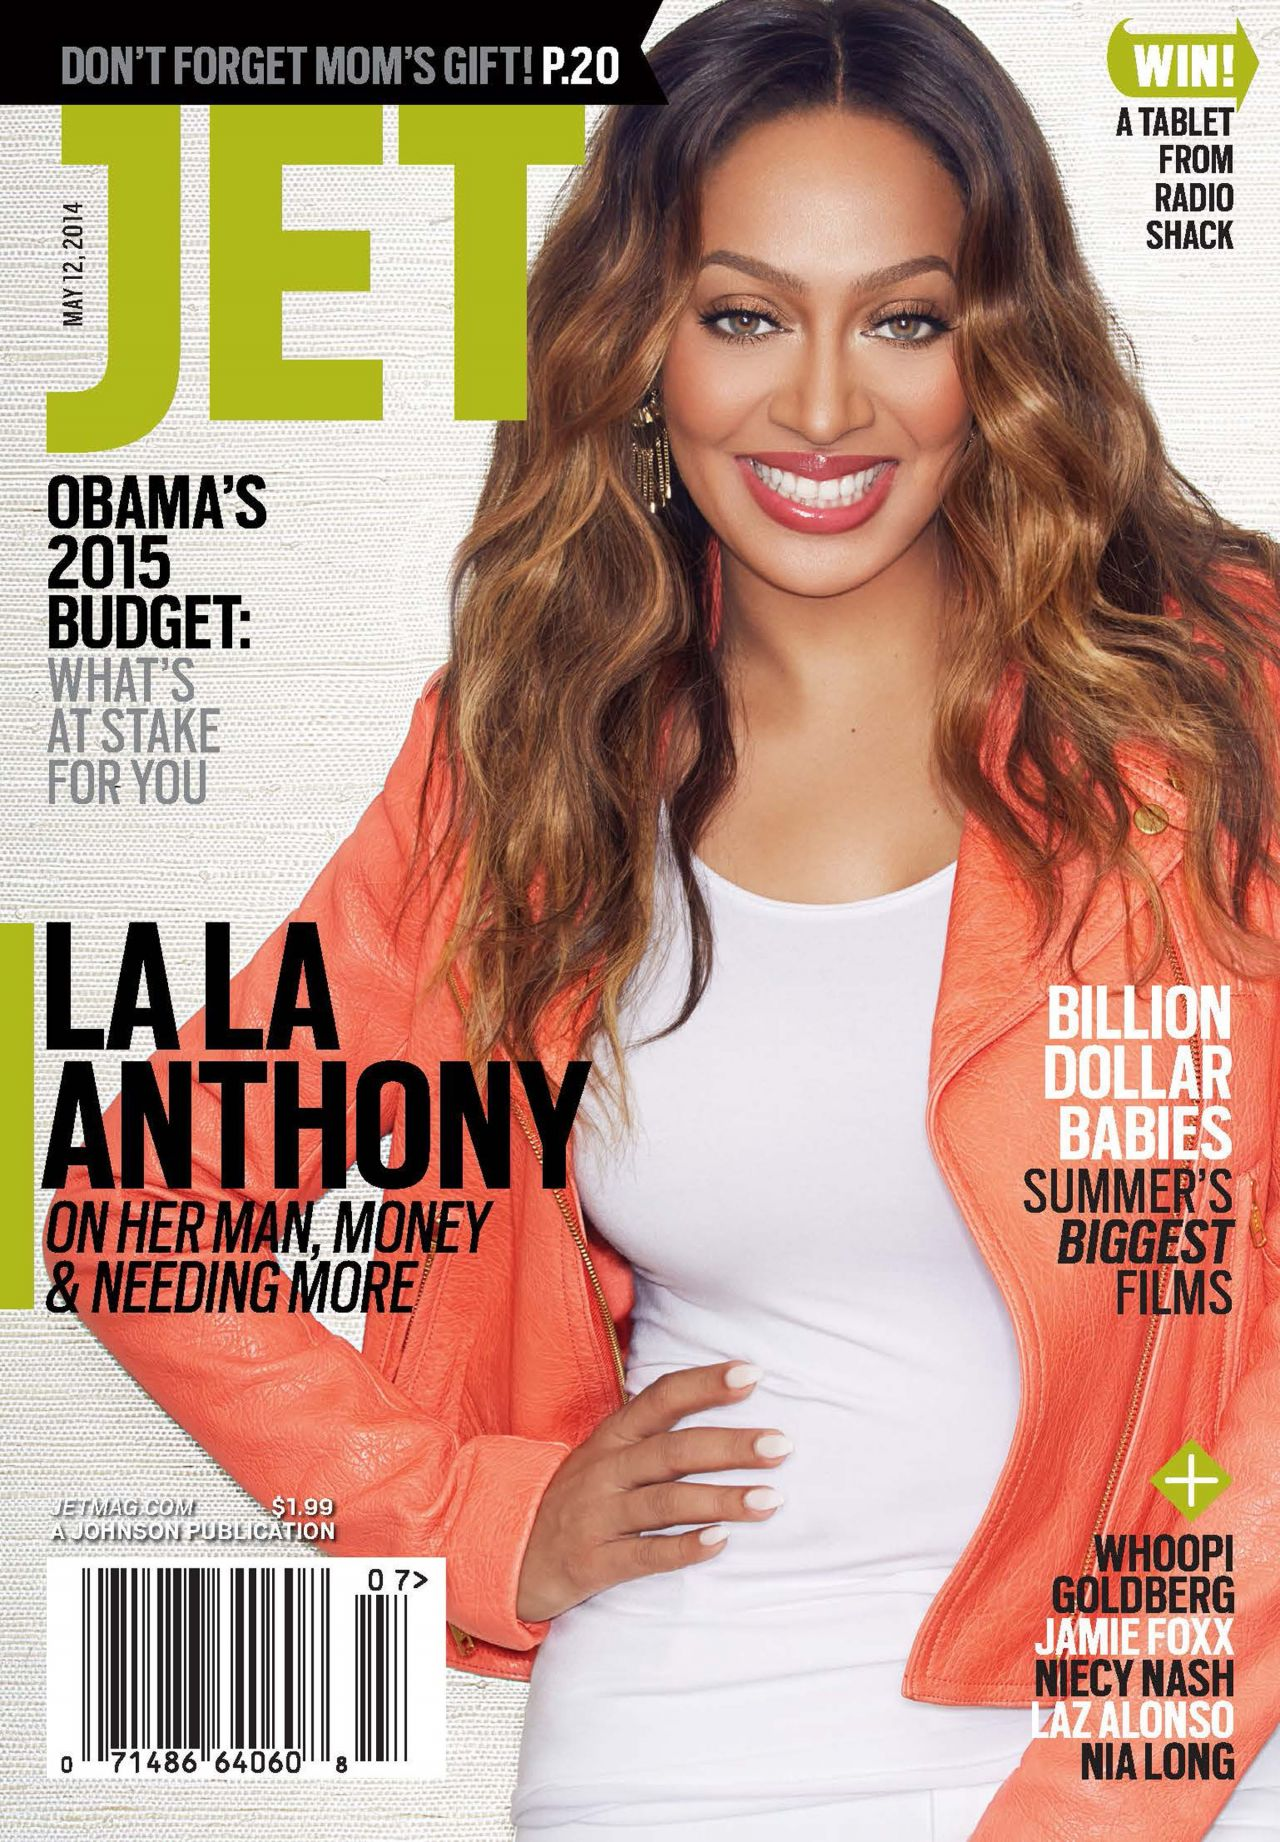 La La Anthony (Vasquez) - Jet Magazine May 12, 2014 Issue